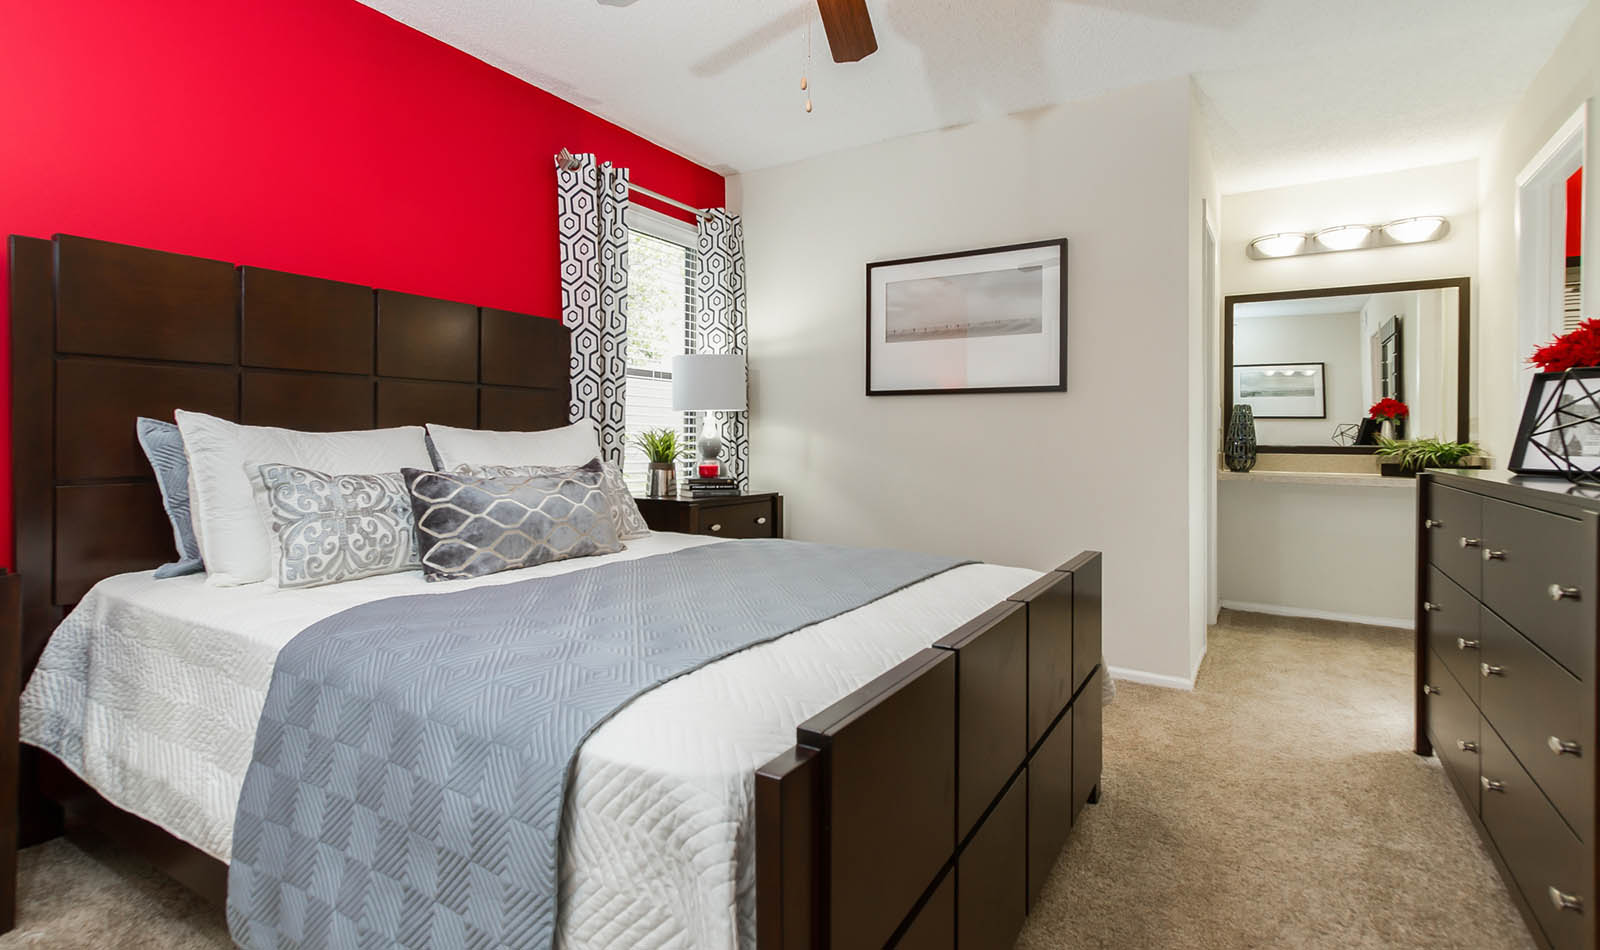 Spacious Master Bedroom With Walk In Closet at The Reserve at Mandarin in Jacksonville, FL